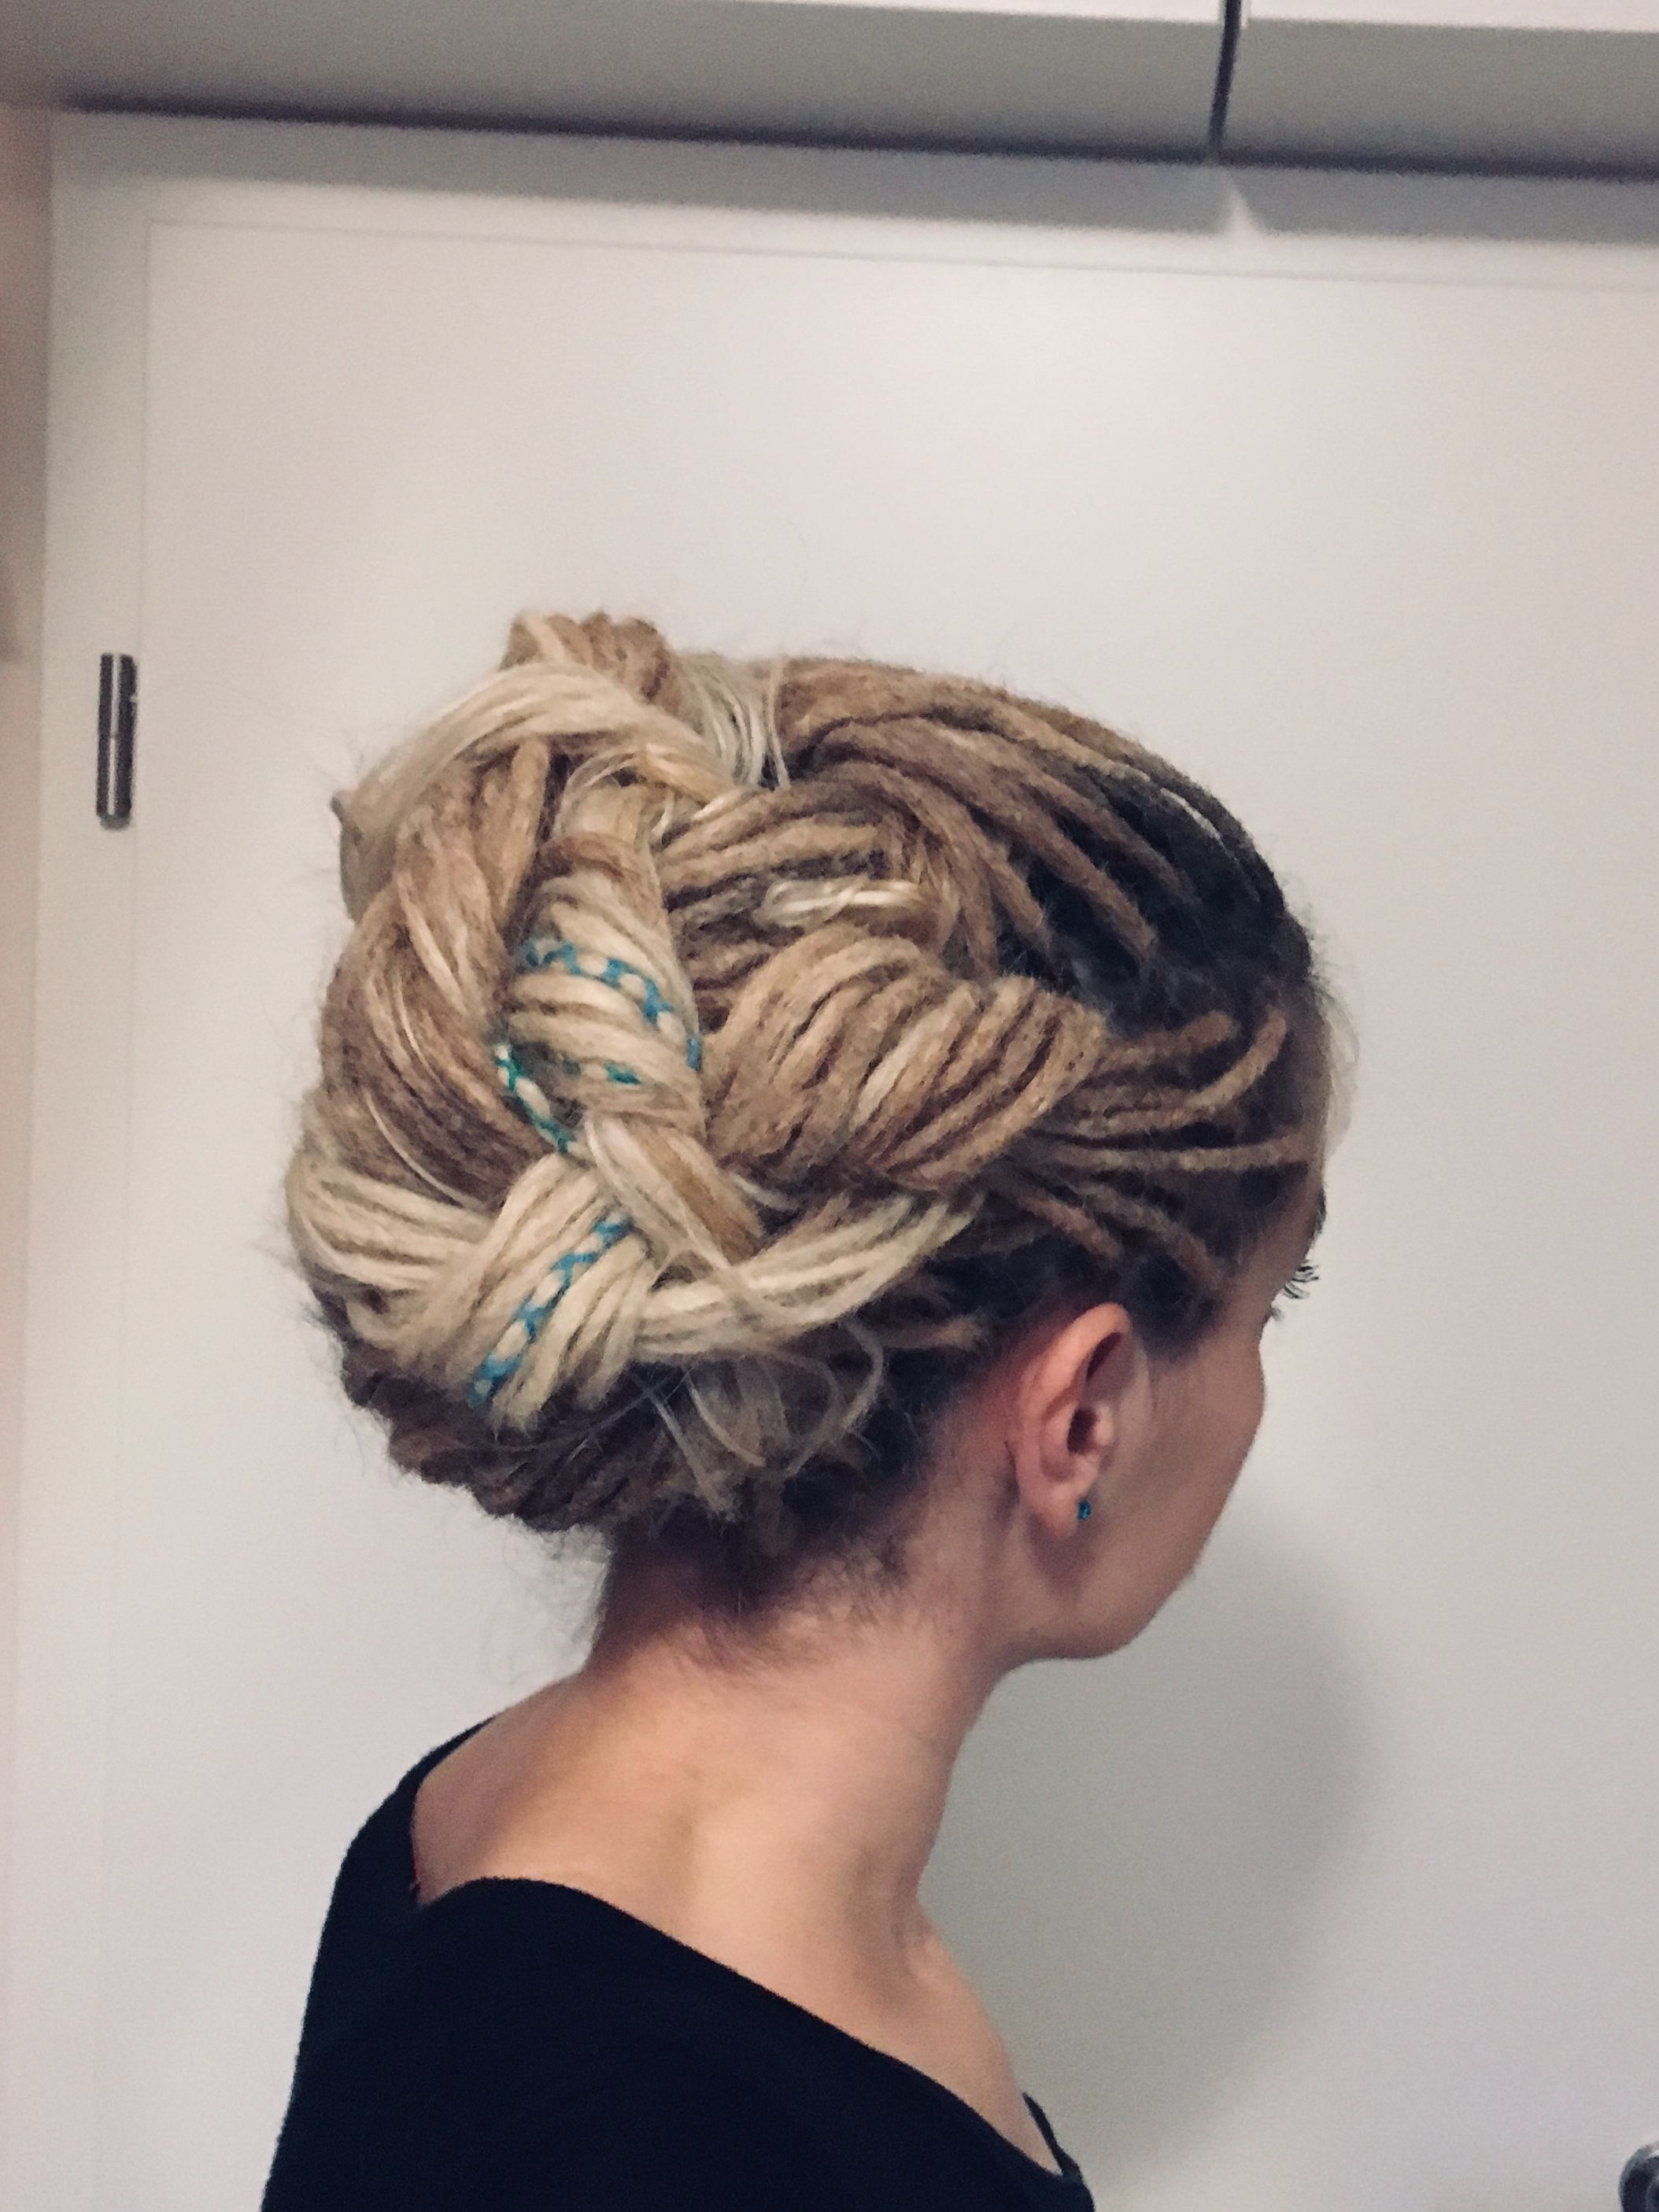 #dreadhairstyles